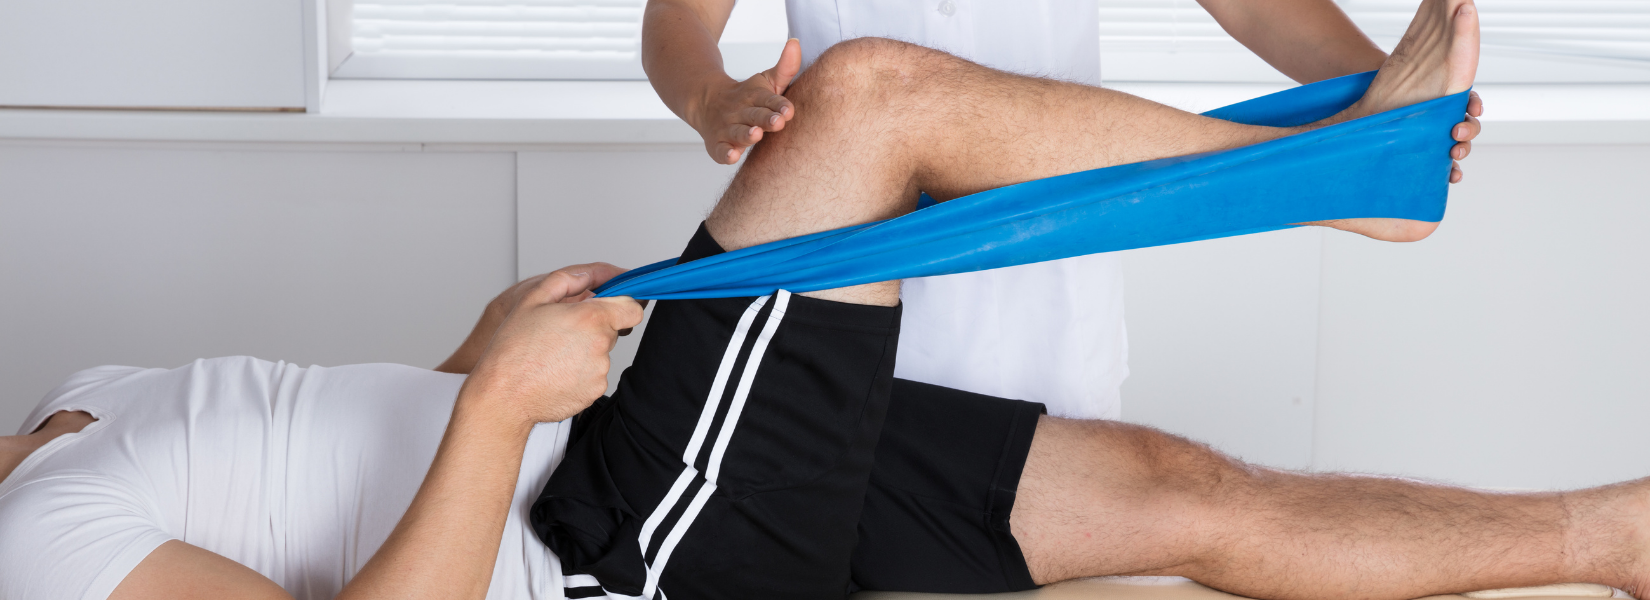 Physiotherapist in Singapore – 5 Things to Look Out For